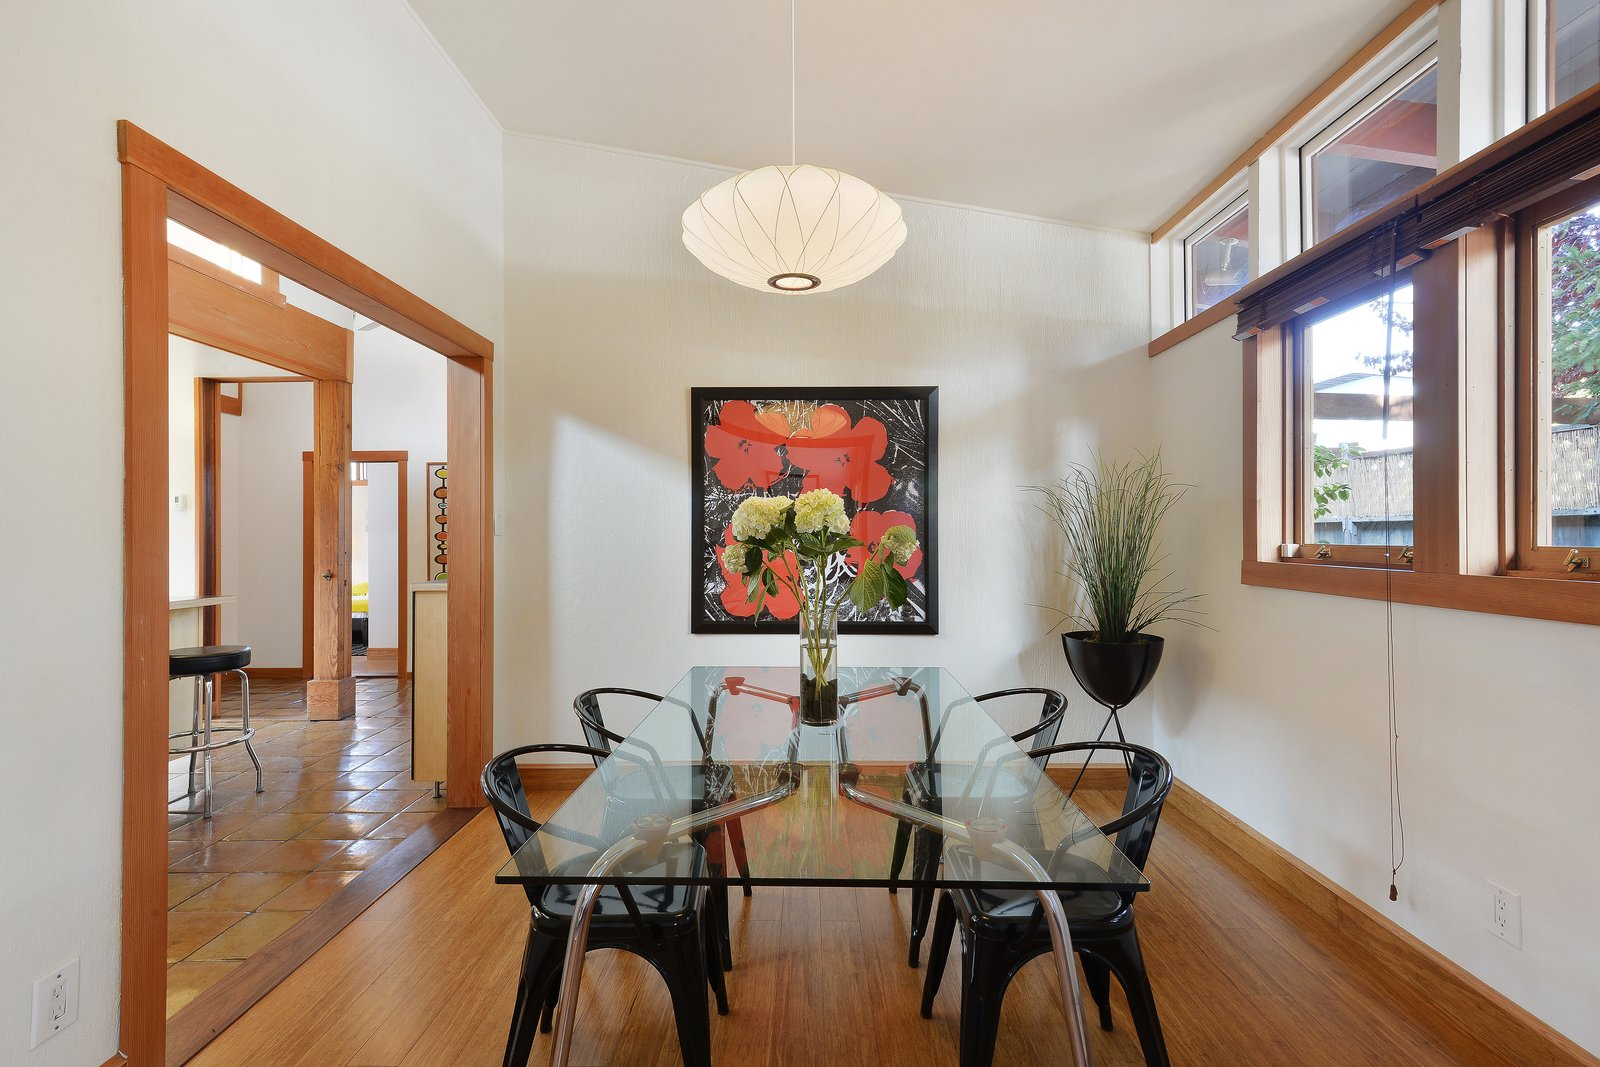 Photo 4 of 12 in Artists Need Apply: This Midcentury Home Comes With an All-Purpose Workshop for $949K